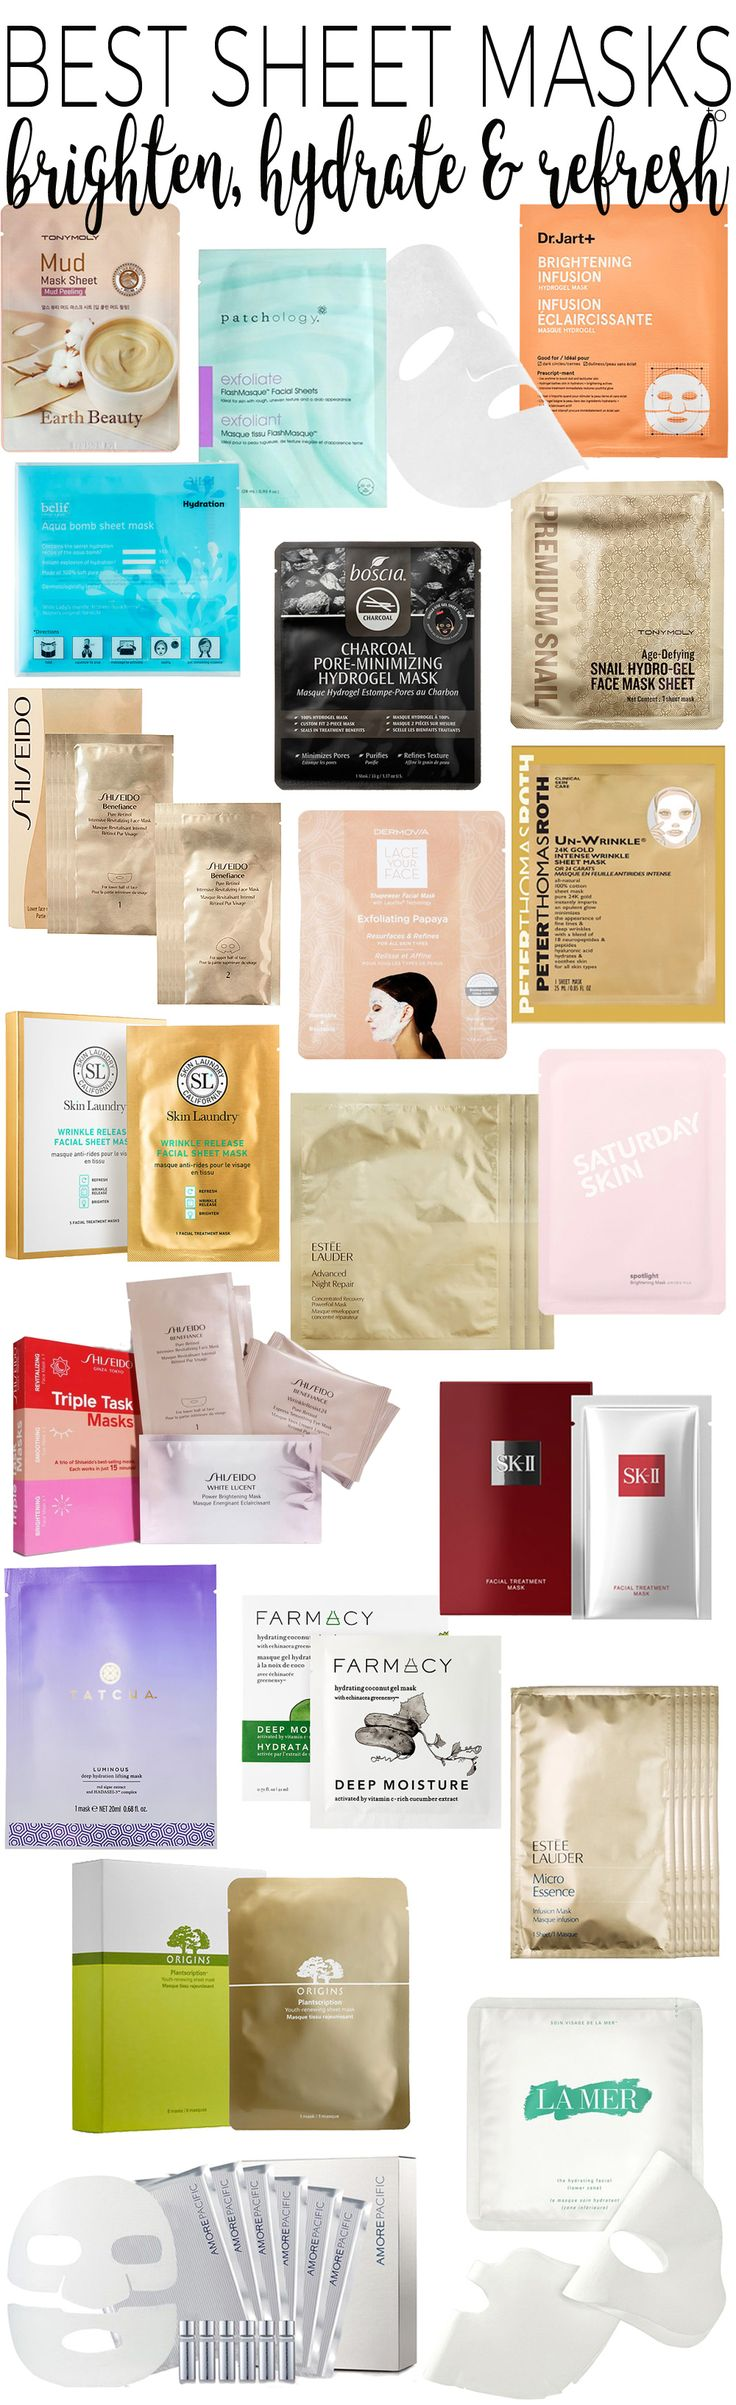 Ahhh, I love taking 20 minutes a few times a week to treat my skin to a  sheet mask. Sheet masks are the best way to give skin a quick pick-me-up  and either brighten, hydrate or refresh the face. Whether your skin is dry,  oily or could use some extra exfoliation (which you should be doing a few